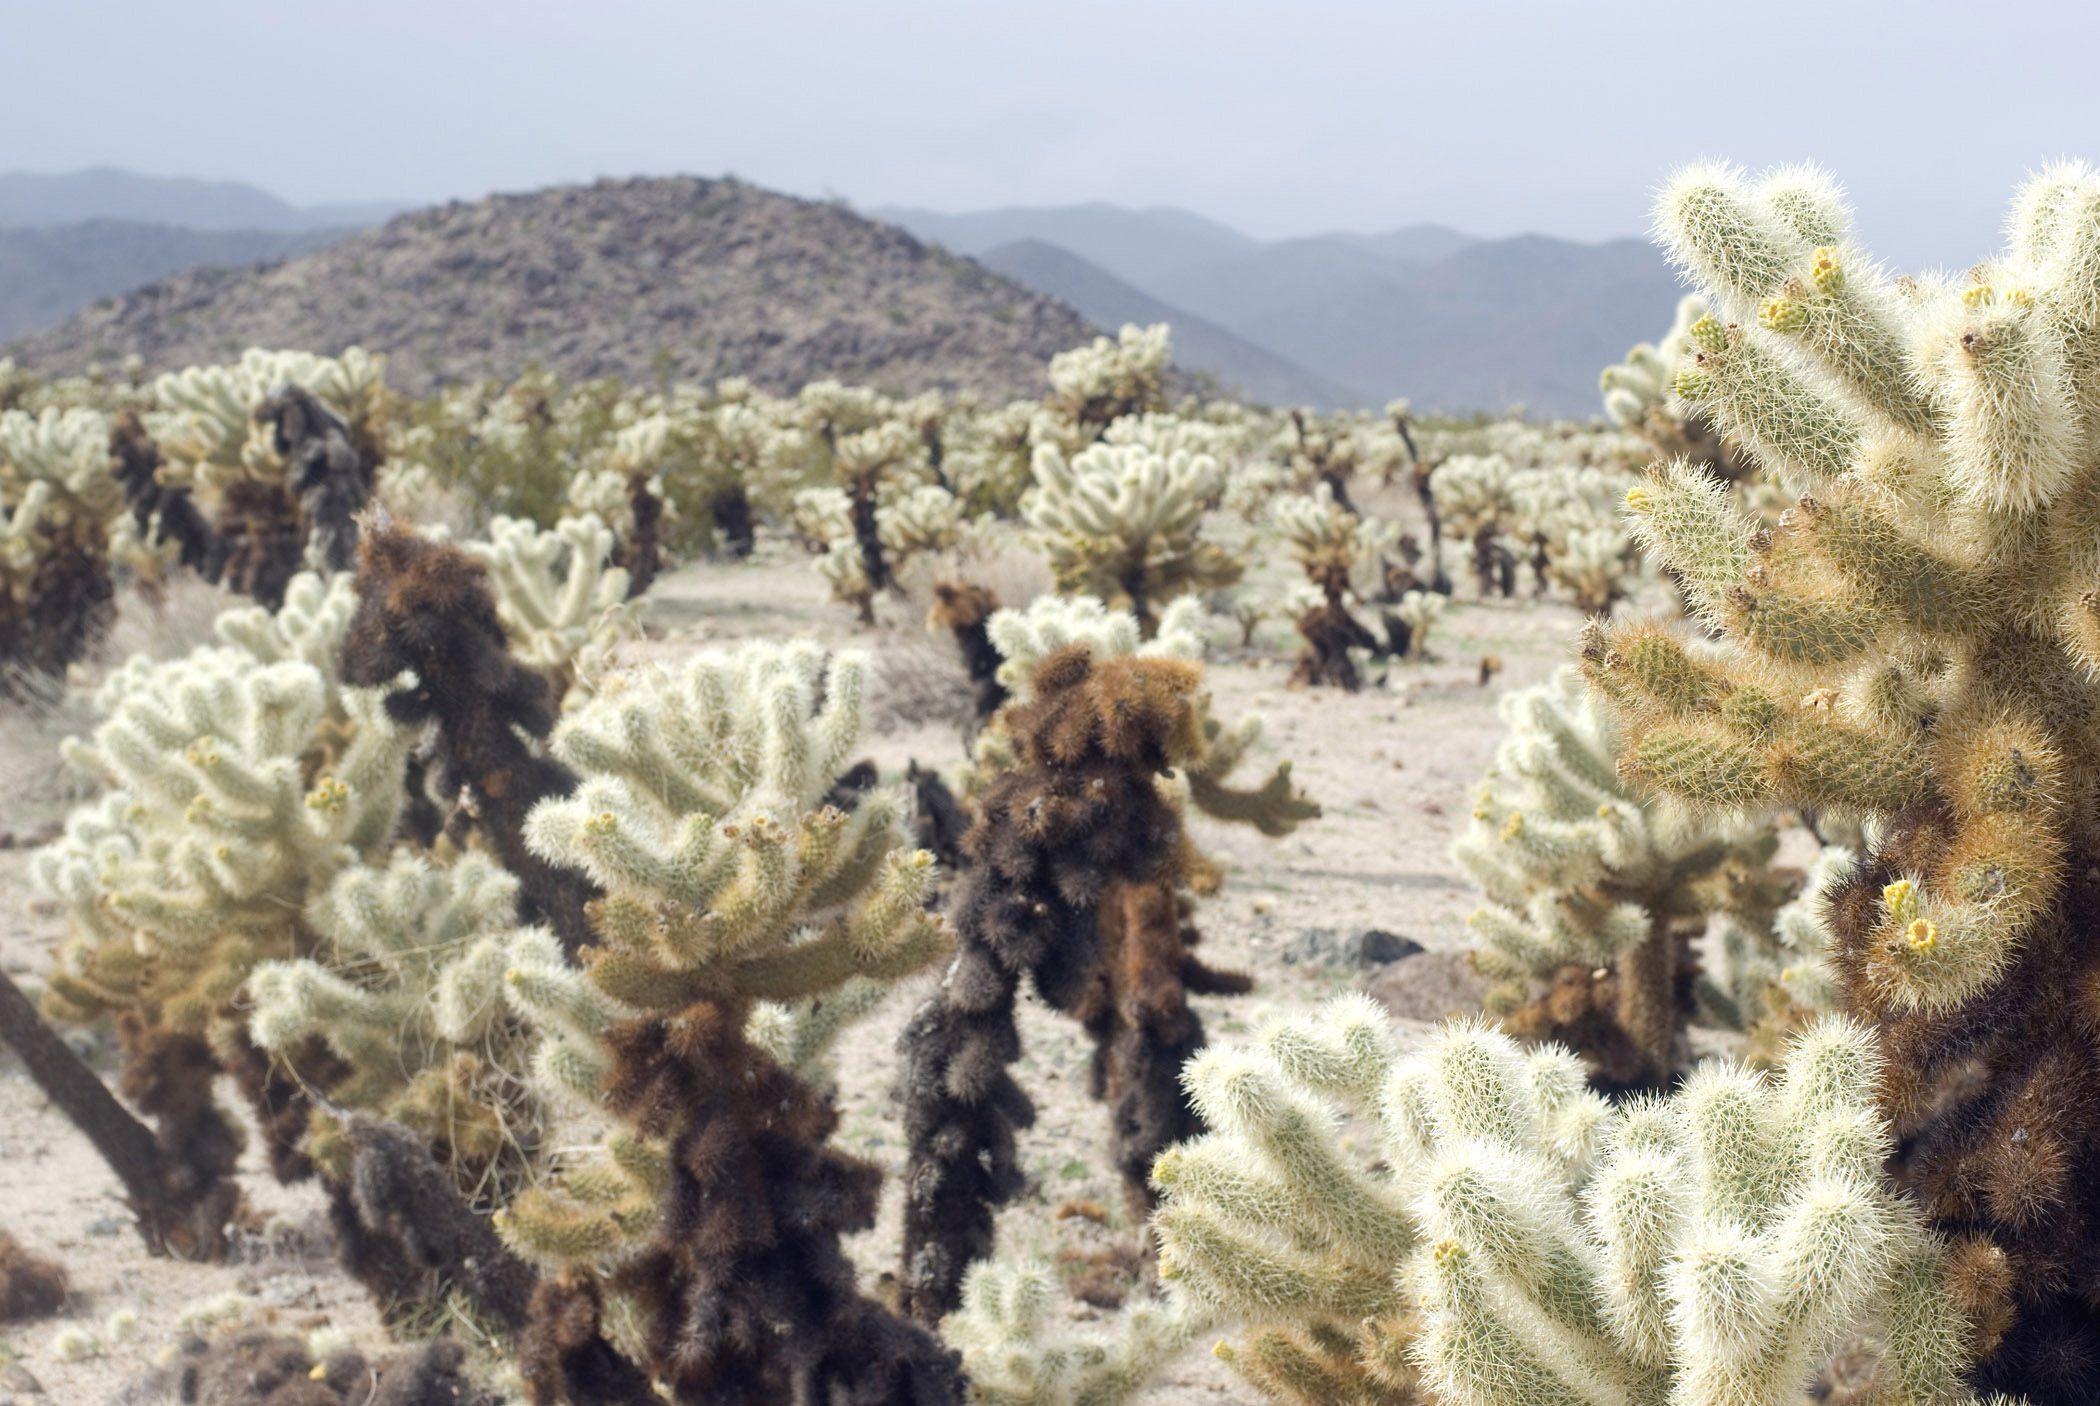 Various Cactus Plants at Cholla Cactus Garden. Captured with Hills Afar on Foggy Sky Background.